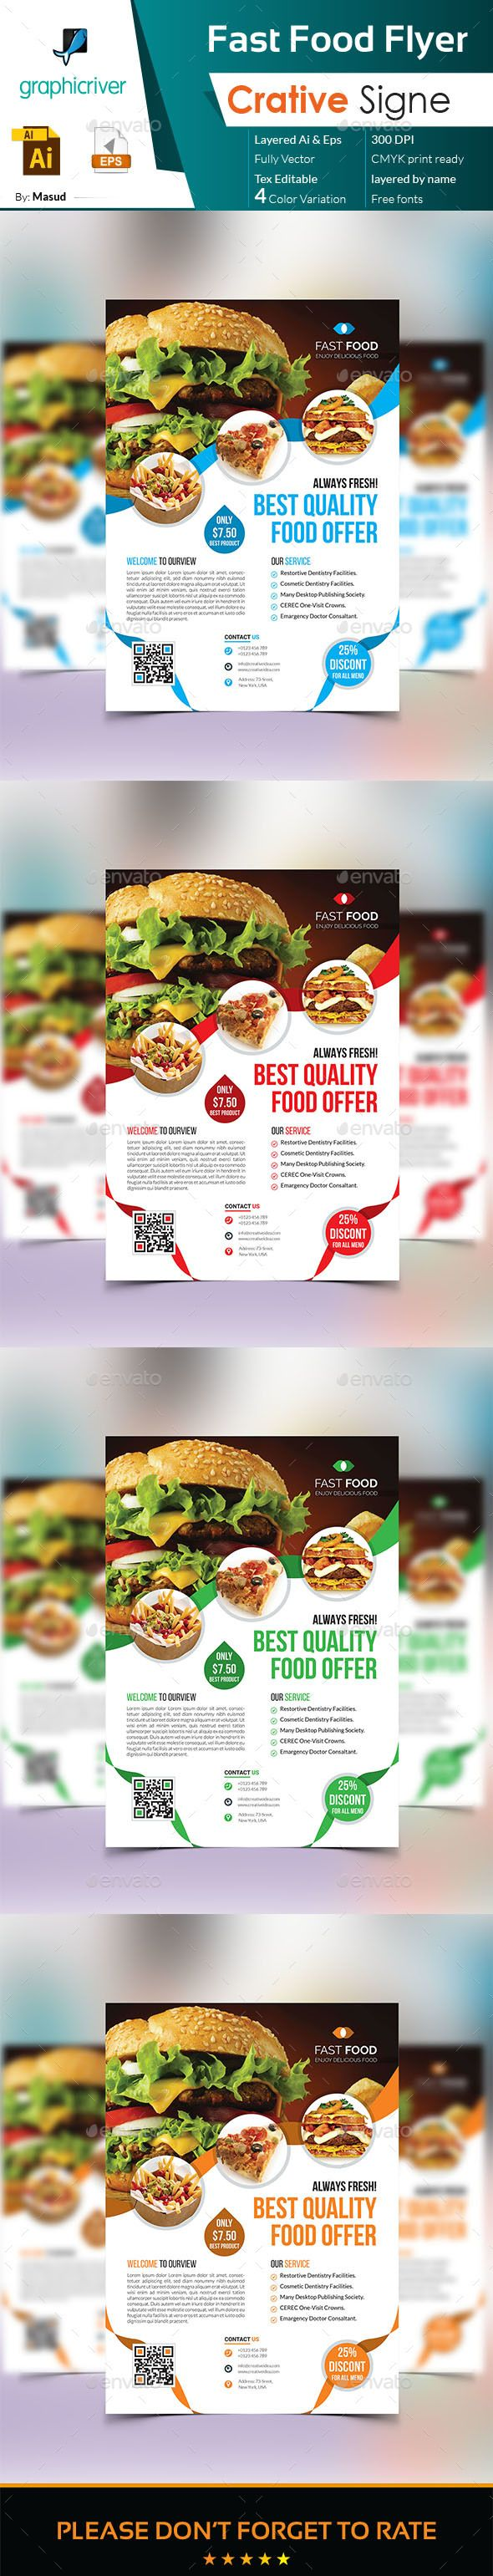 fast food flyer flyer template ai illustrator and template